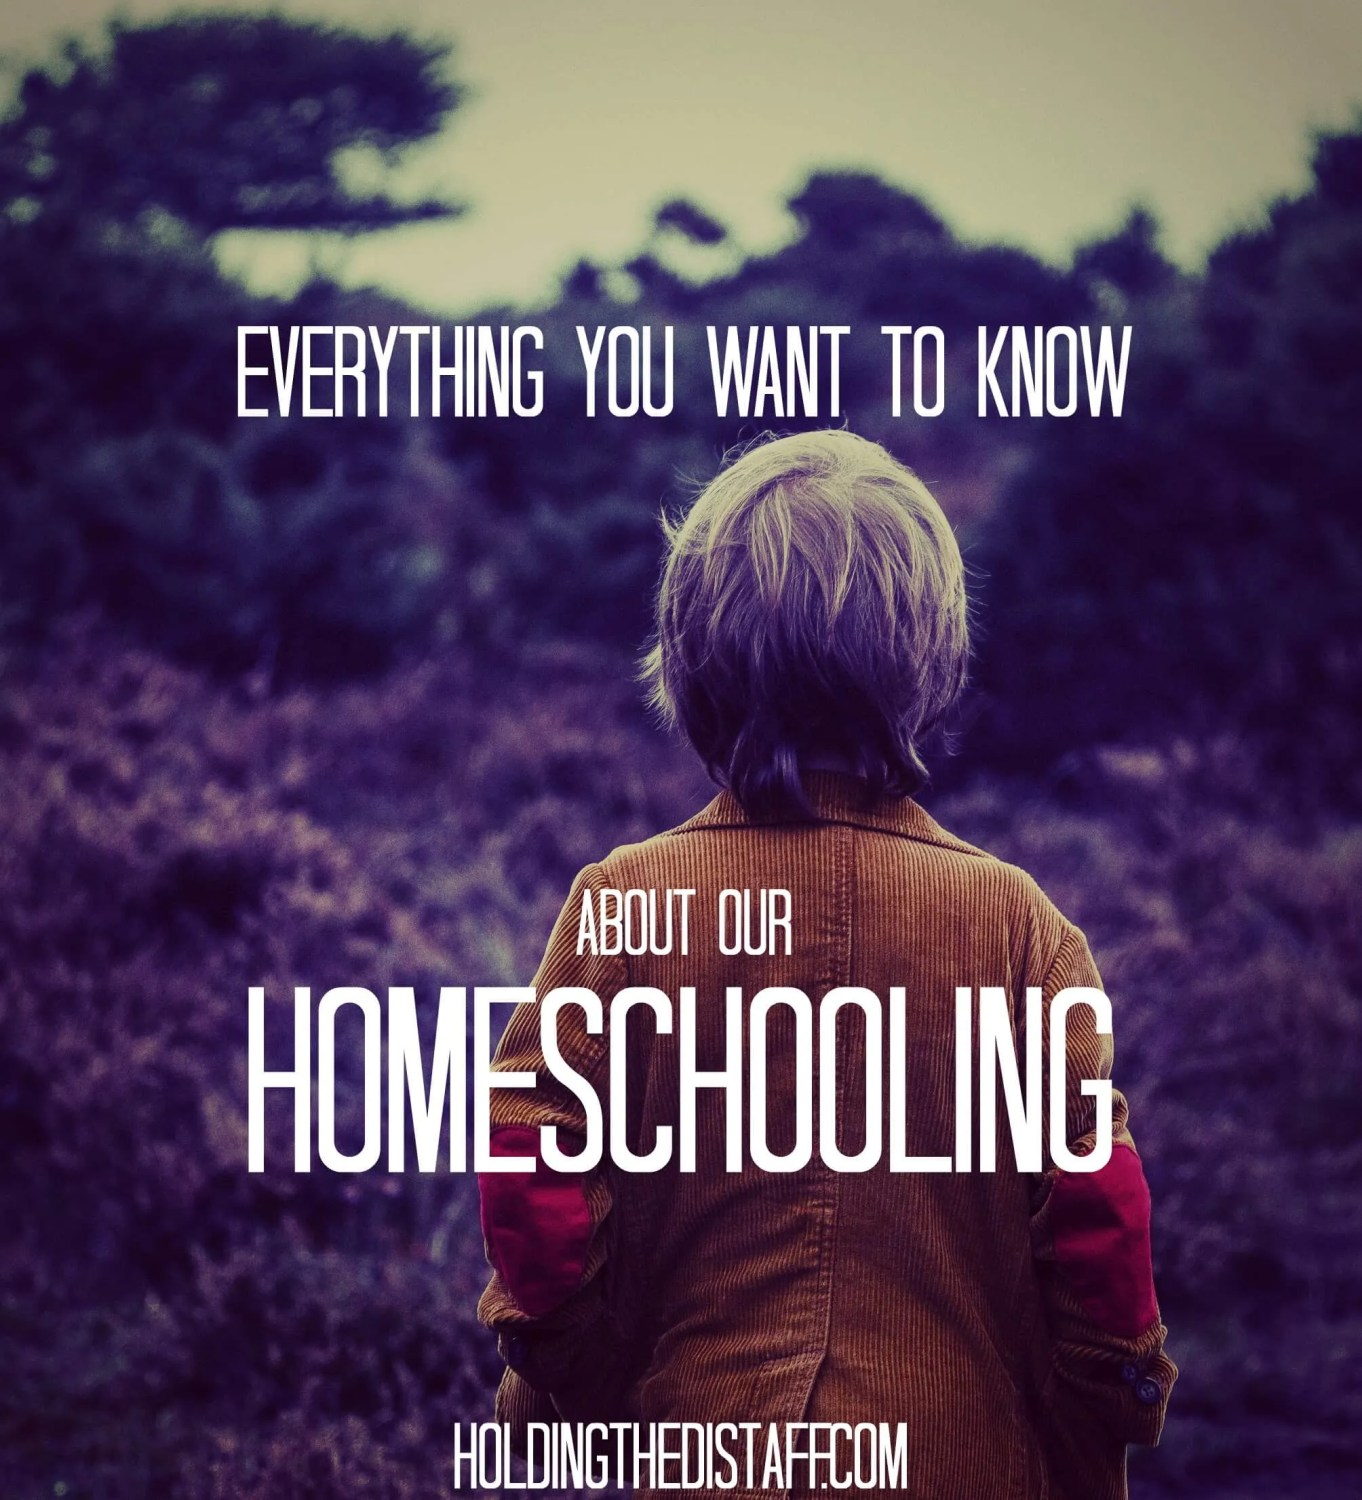 Everything you want to know about our homeschooling: common questions we get about how and why we homeschool.